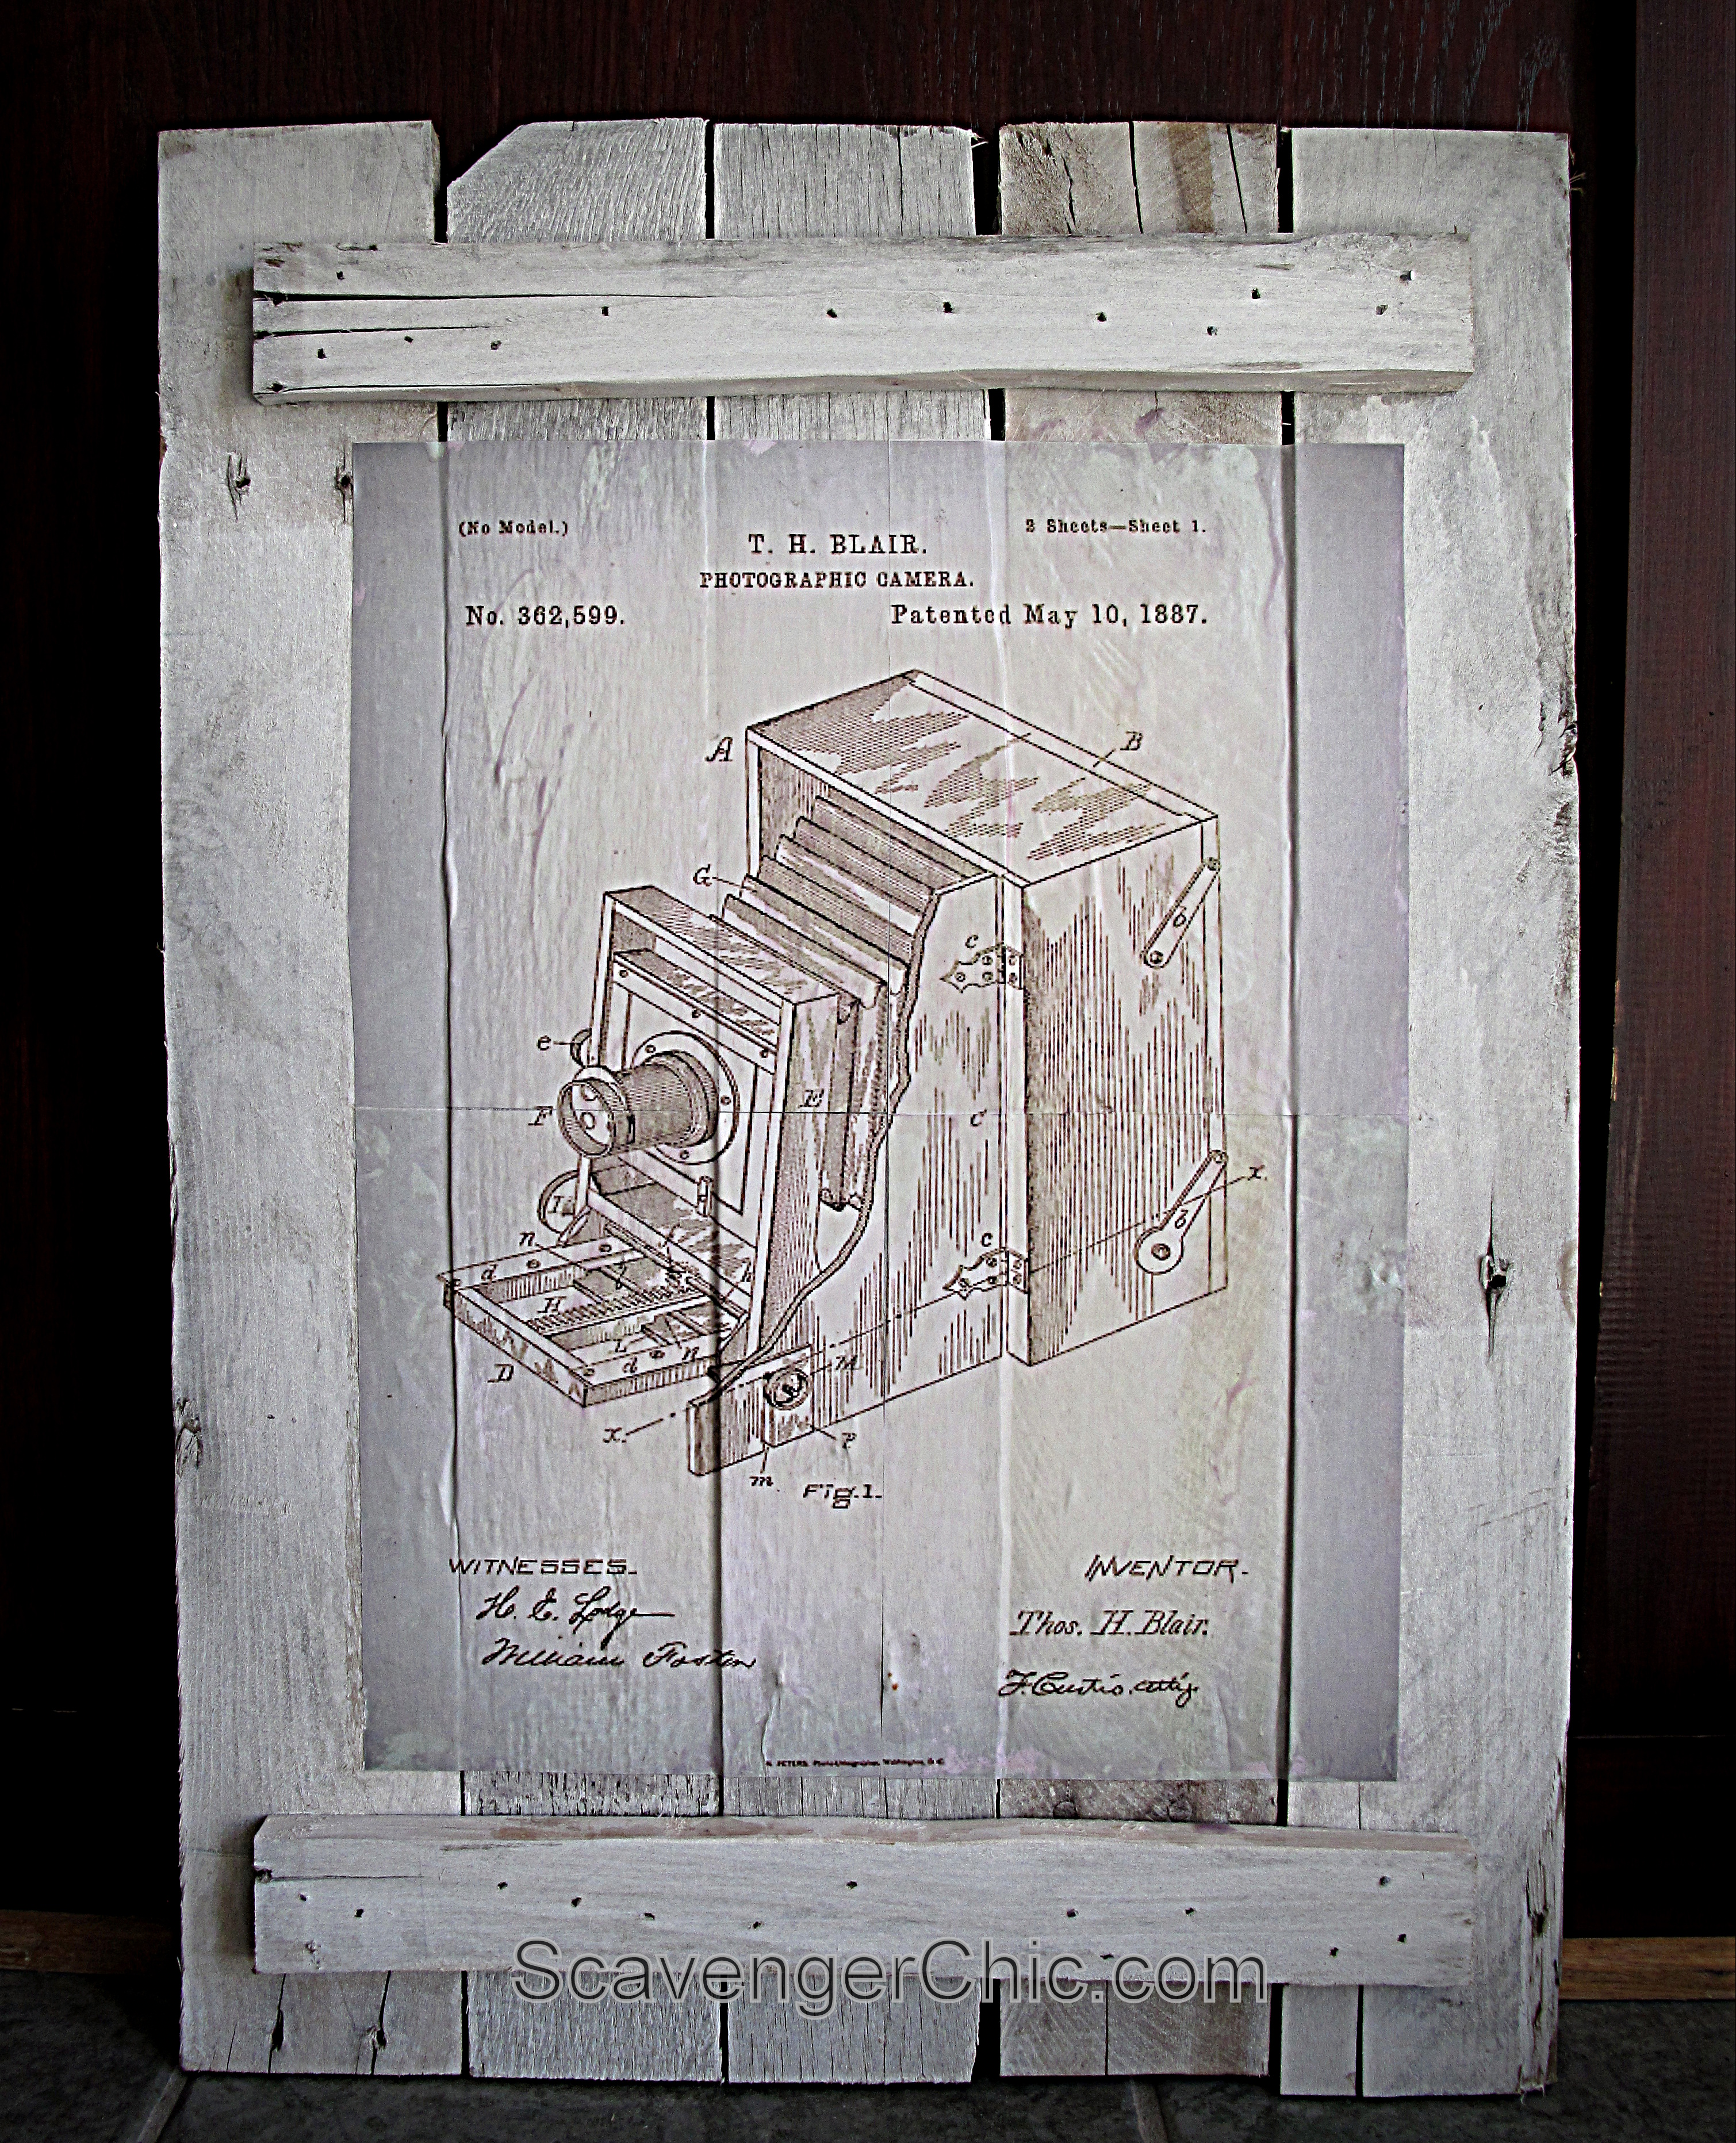 Vintage Patent Art Work for FREE – Scavenger Chic